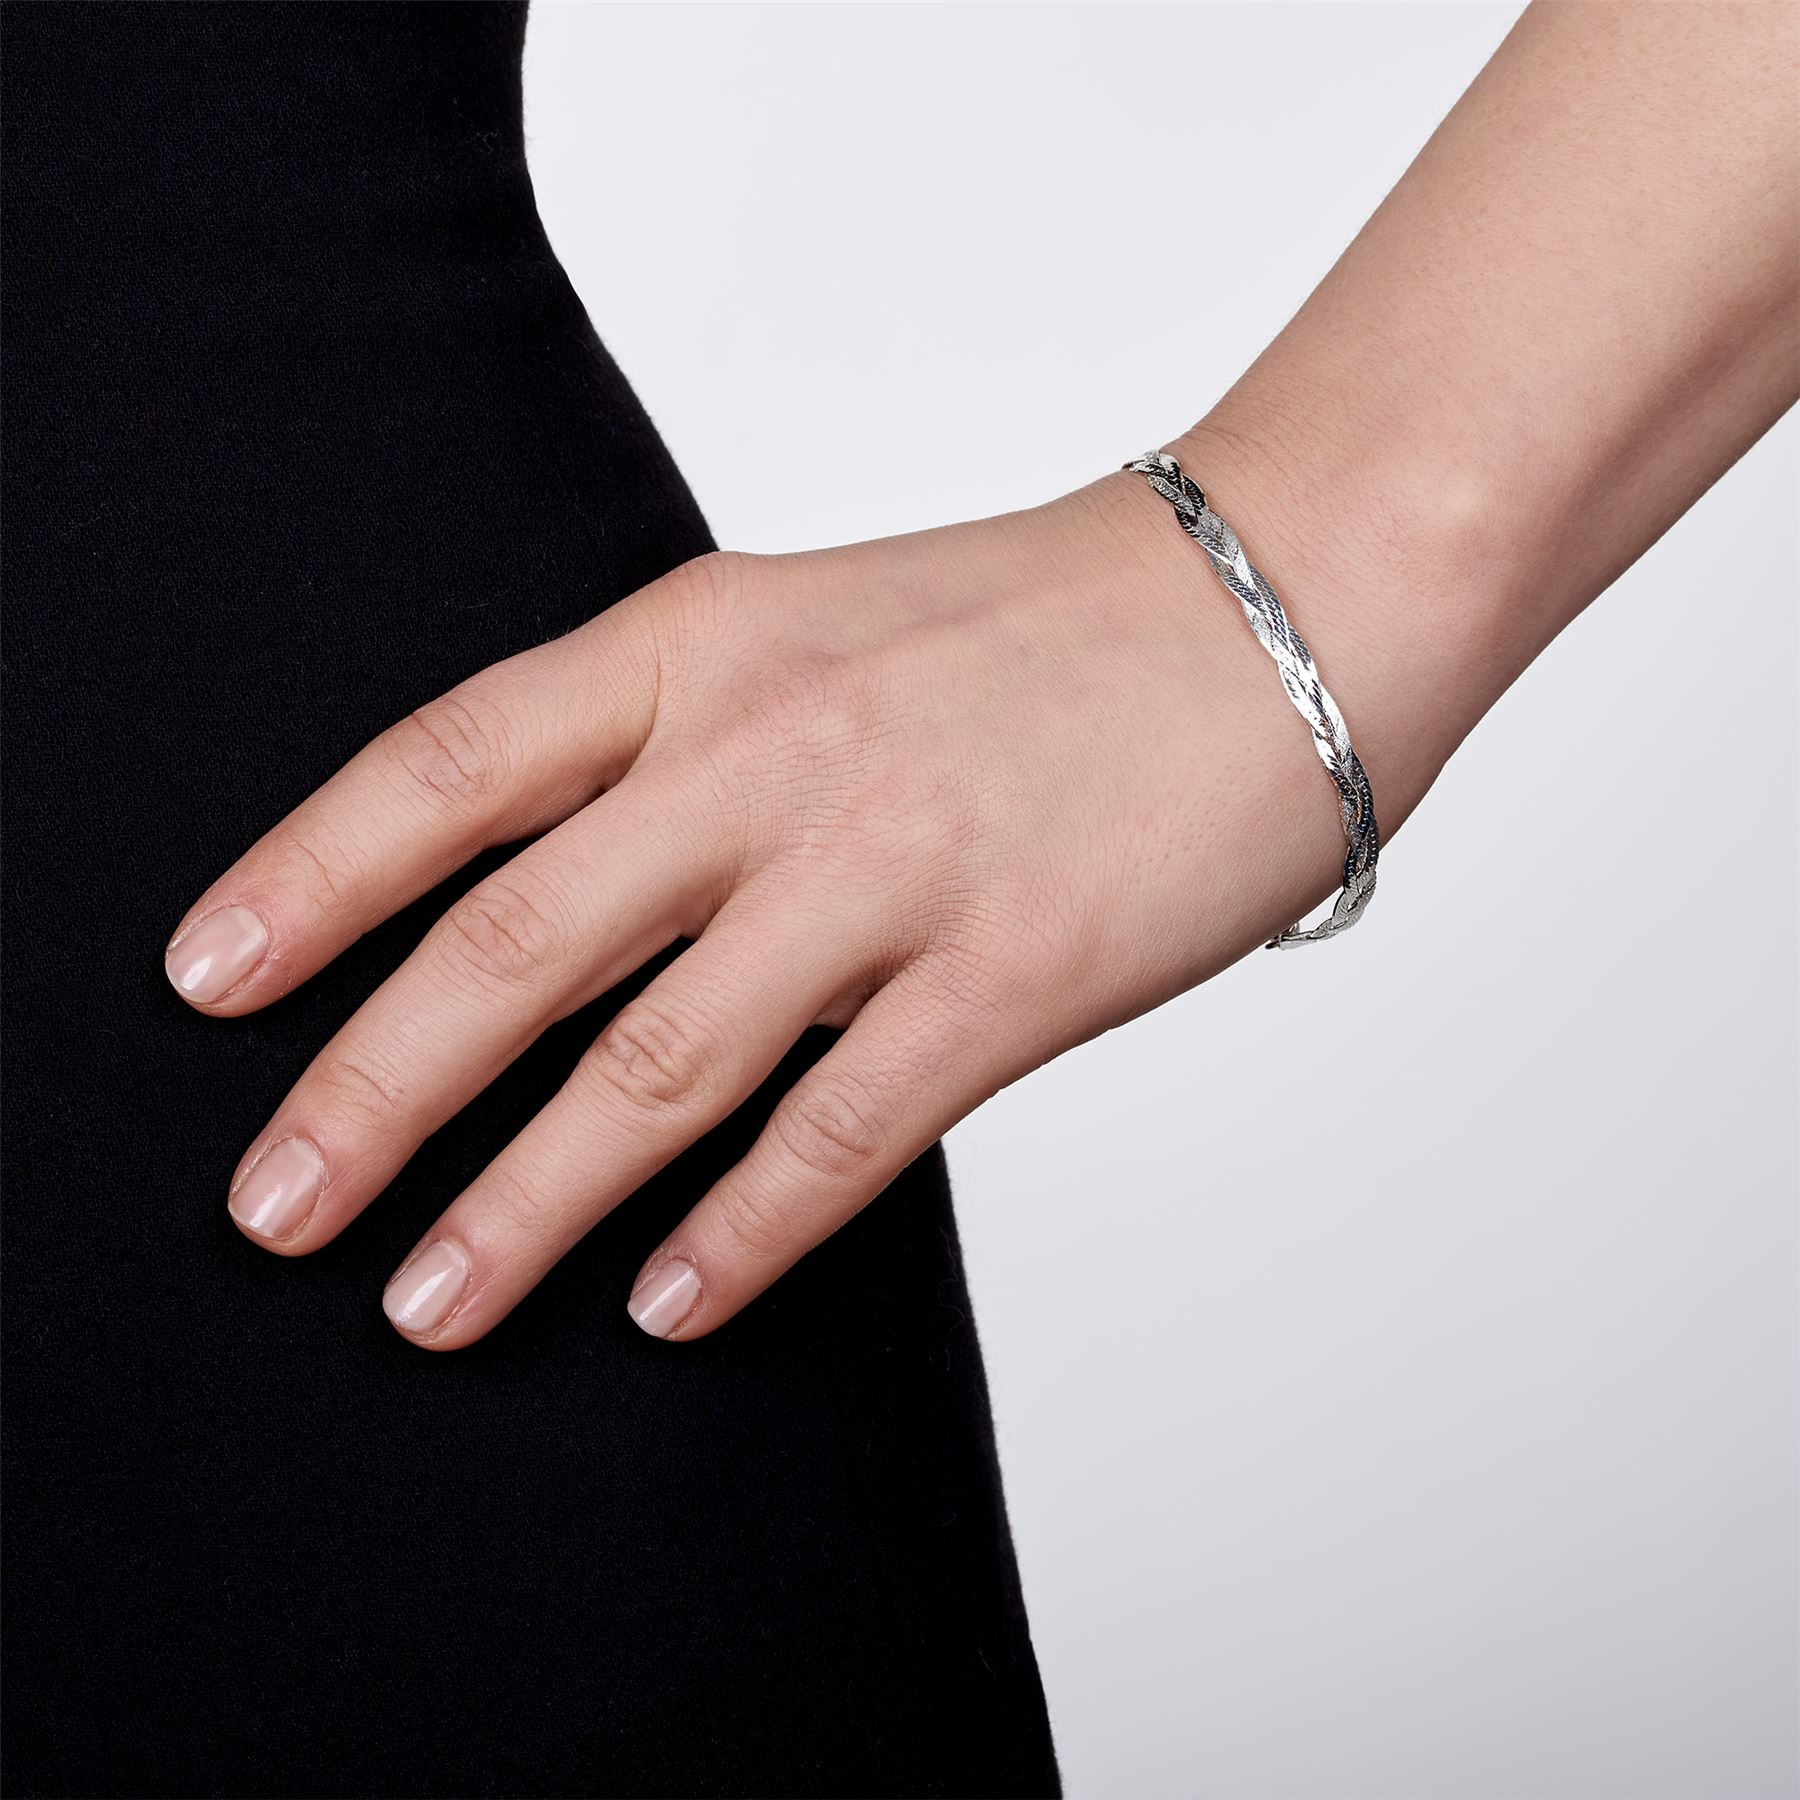 Amberta-Jewelry-Genuine-925-Sterling-Silver-Bracelet-Bangle-Chain-Made-in-Italy thumbnail 100